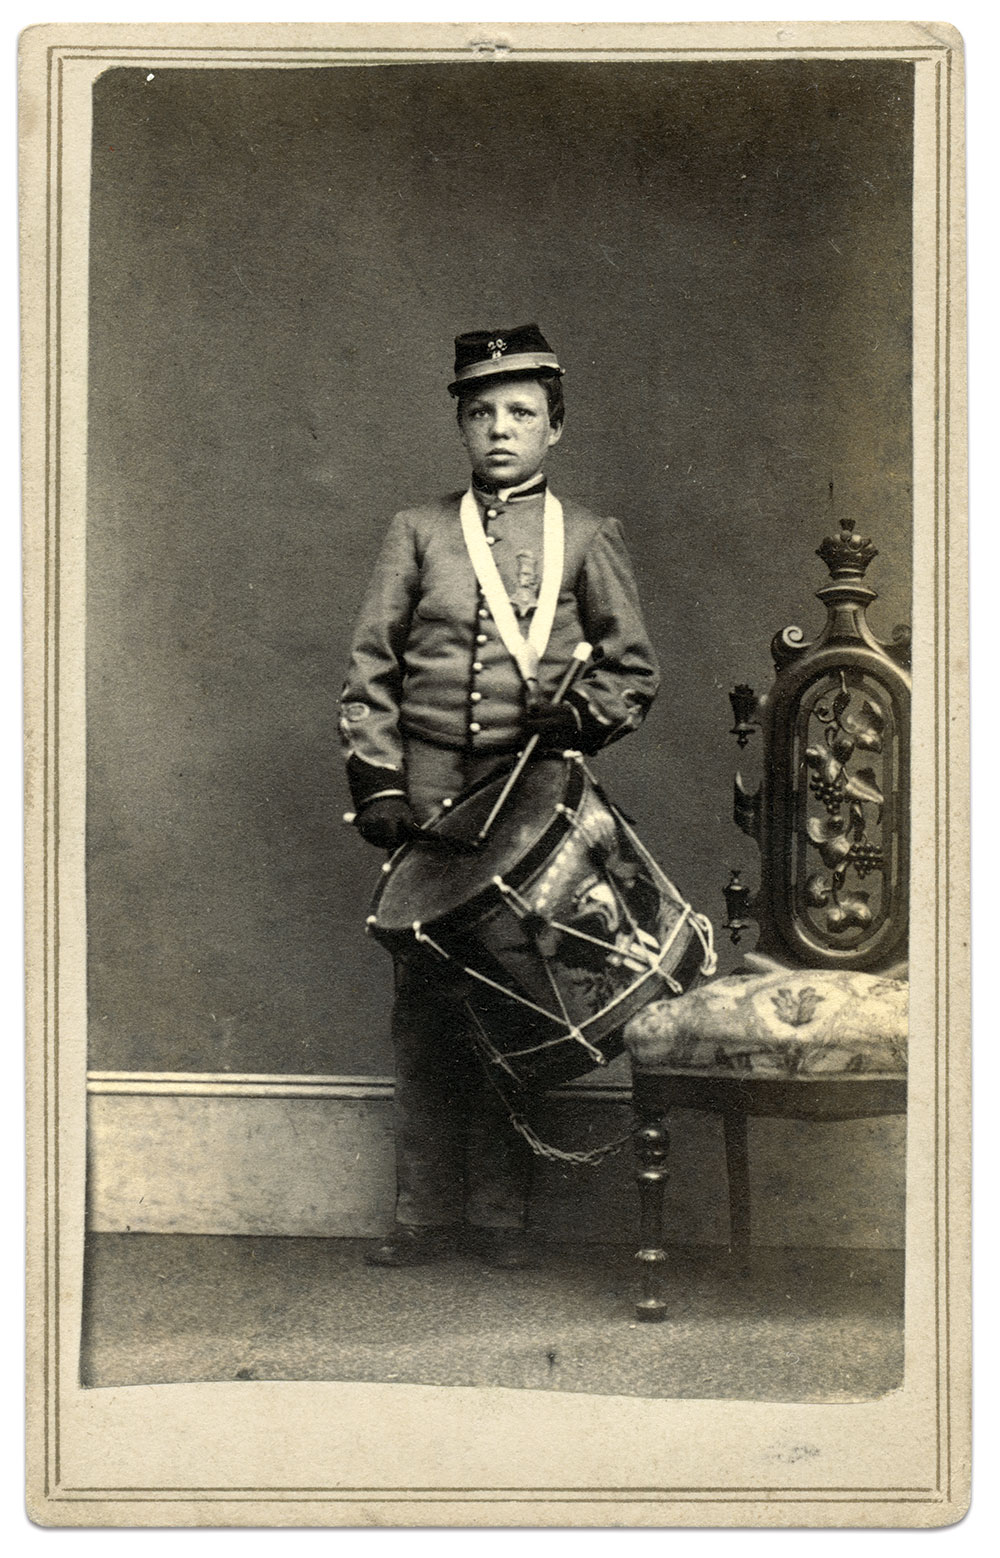 """Willie Johnston is pictured in this carte de visite as a Veteran Reserve Corpsman with his drum and Medal of Honor. Marius B. Peladeau, author of the 2005 book When Willie Went to War, observes that the drumsticks appear to be expensive, perhaps topped by German silver or ivory. Though the photographer of this portrait is unidentified, a February 1864 report in The Caledonian newspaper of St. Johnsbury, Vt., states """"Willie Johnston, the little drummer boy, returned to his regiment last week. Mr. Gage has card pictures of this little veteran with his drum, for sale."""" Mr. Gage is likely St. Johnsbury photographer Franklin B. Gage. Carte de visite attributed to Franklin B. Gage of St. Johnsbury, Vt. Ronald S. Coddington Collection."""